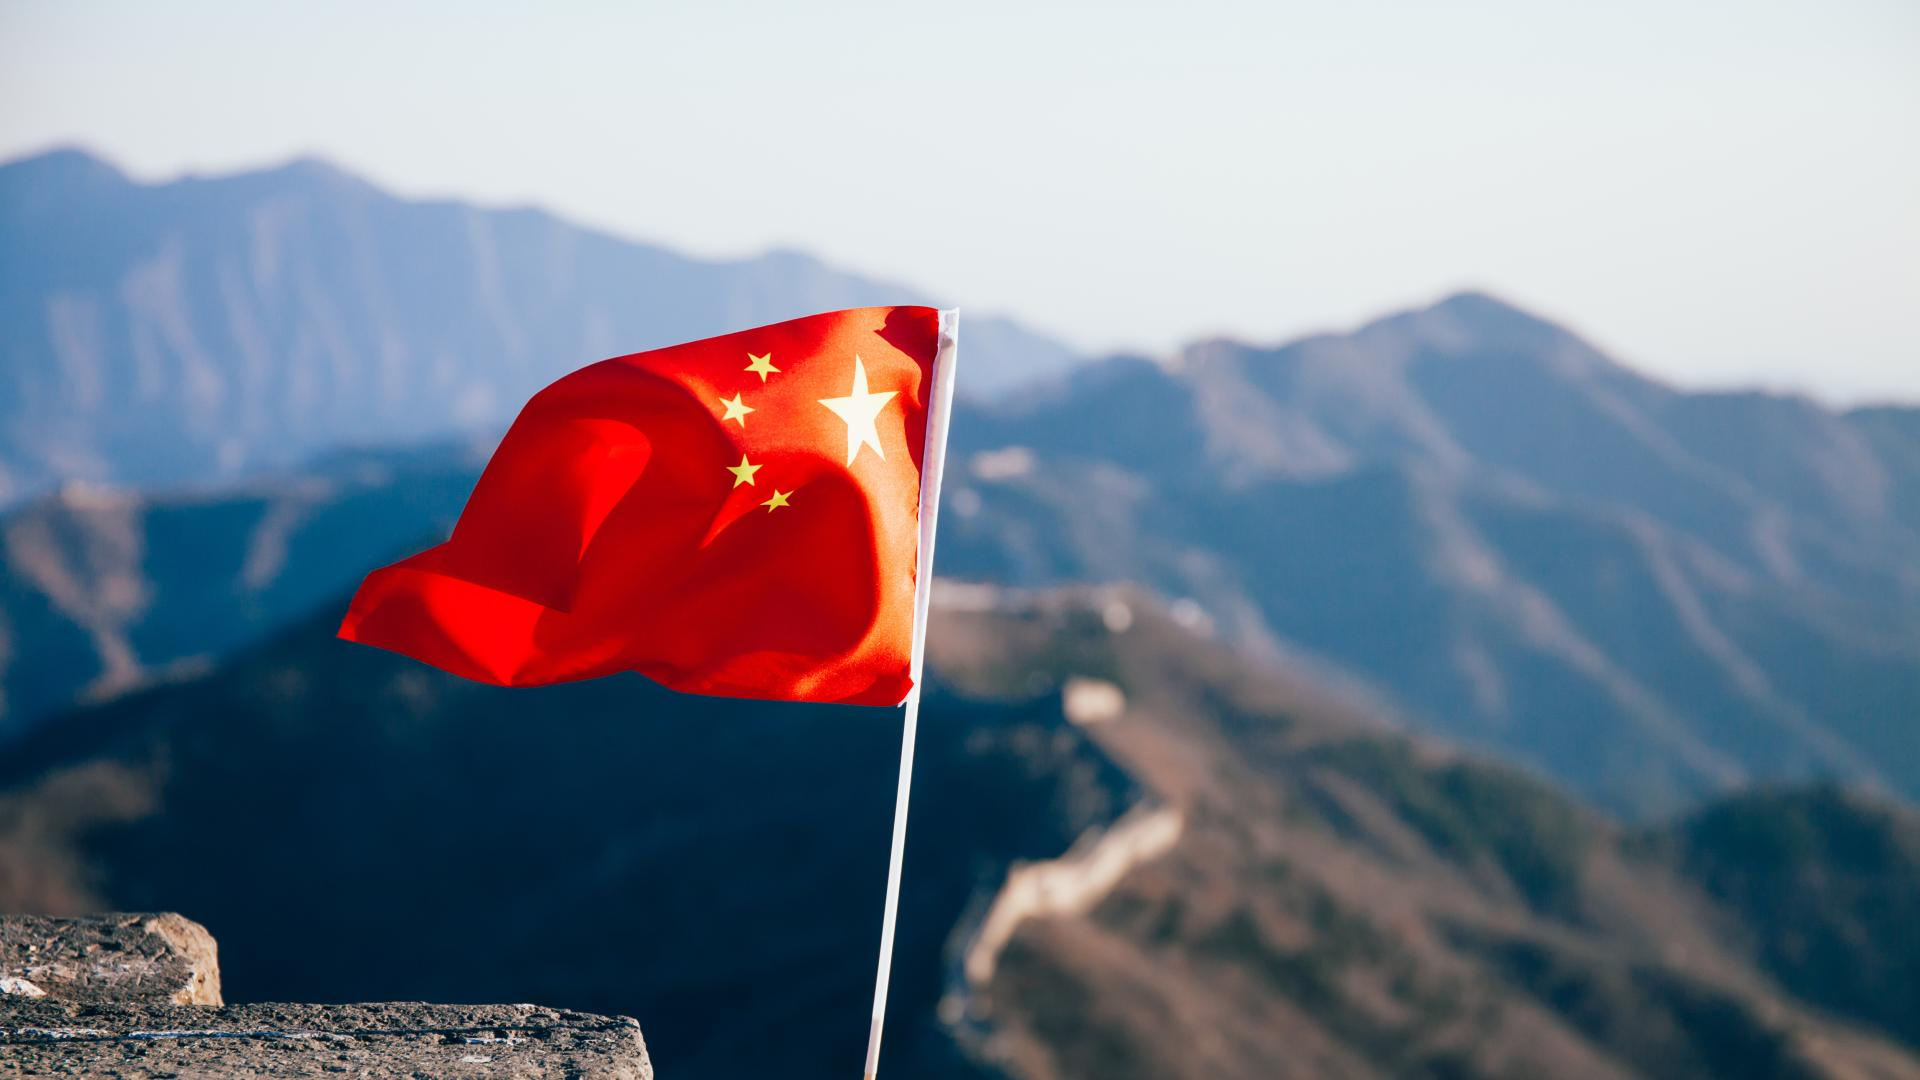 China flag flying over mountains in China